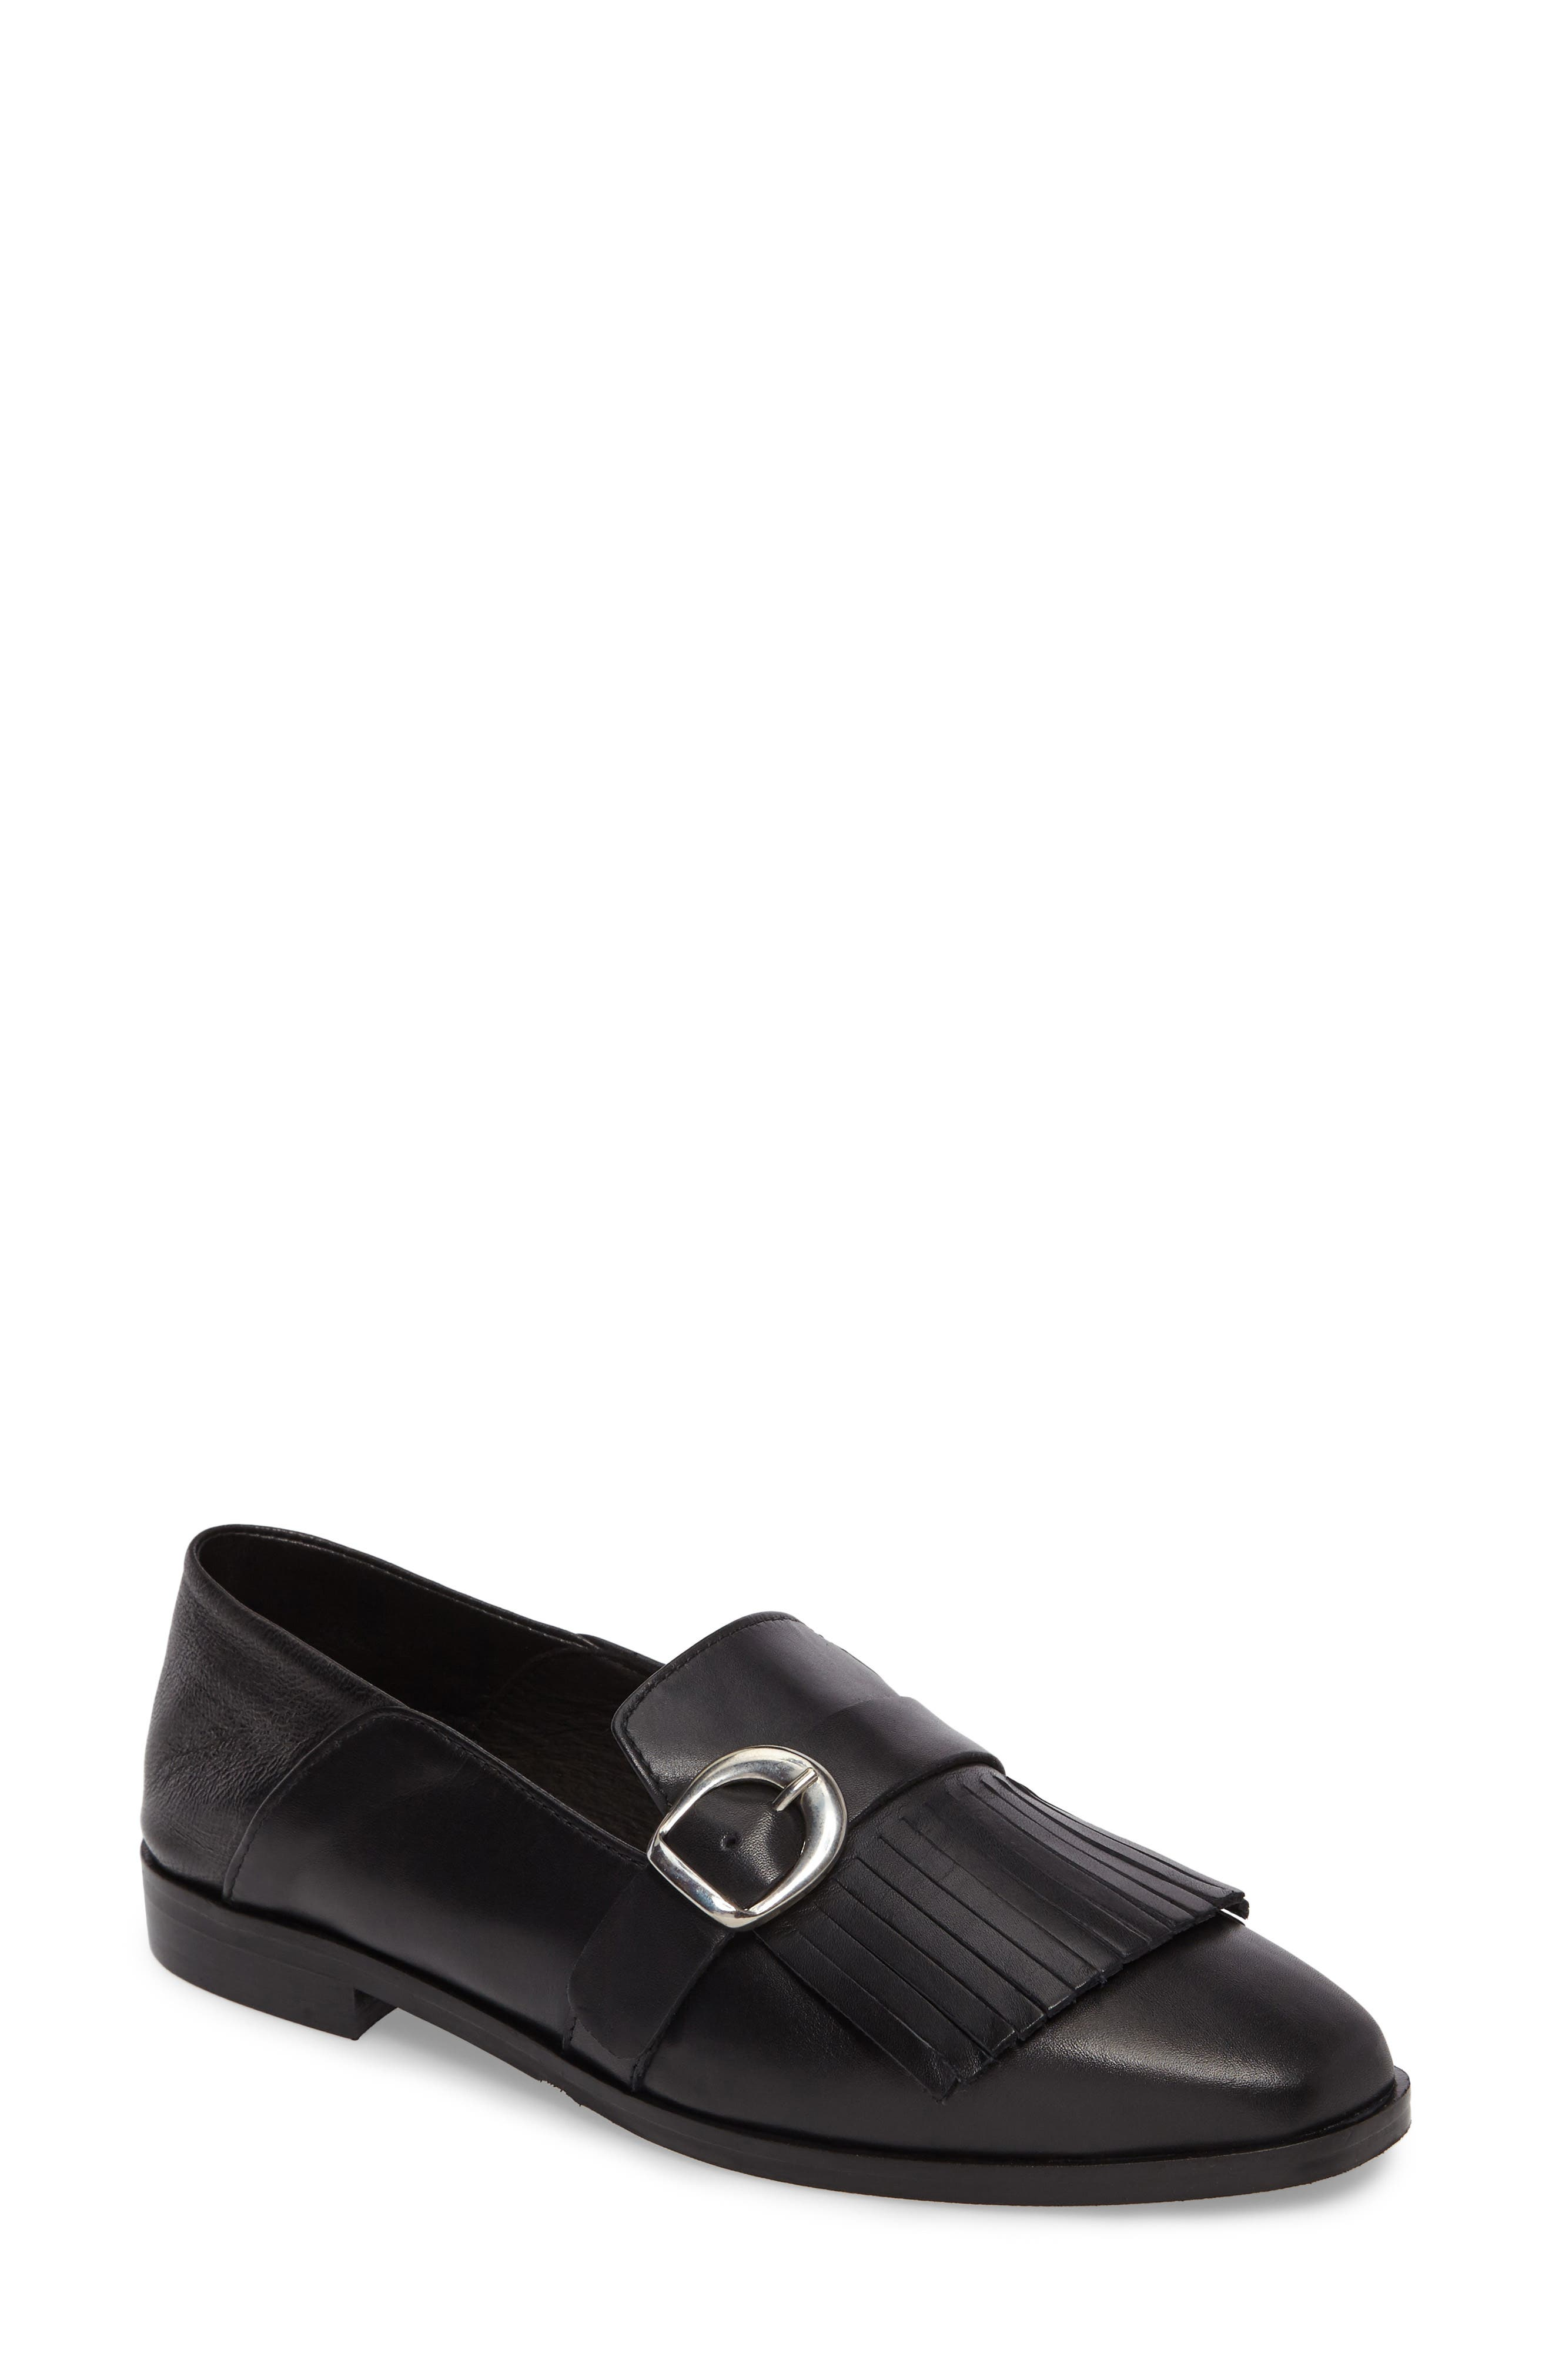 Dame Fringed Loafer Flat,                             Main thumbnail 1, color,                             001